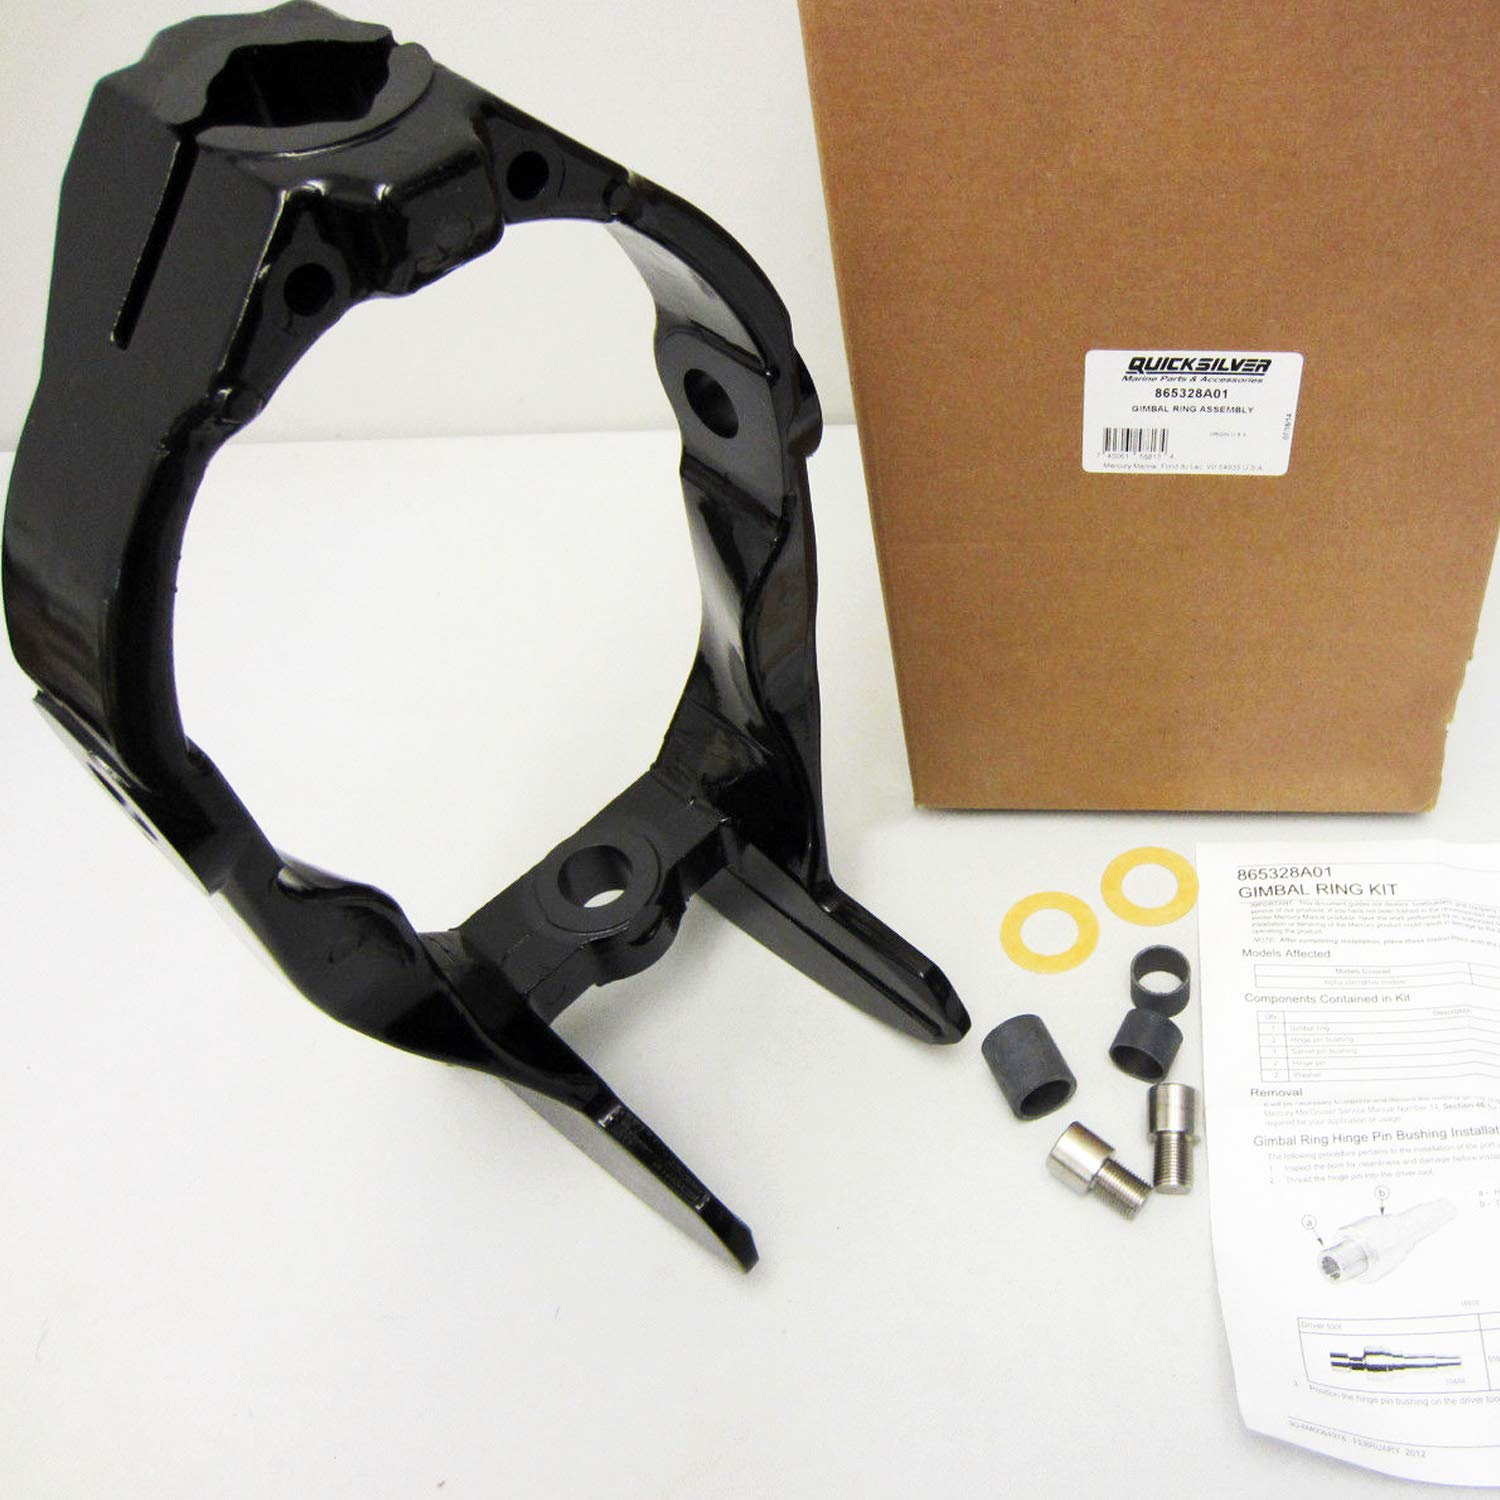 Quicksilver Gimbal Ring Assembly